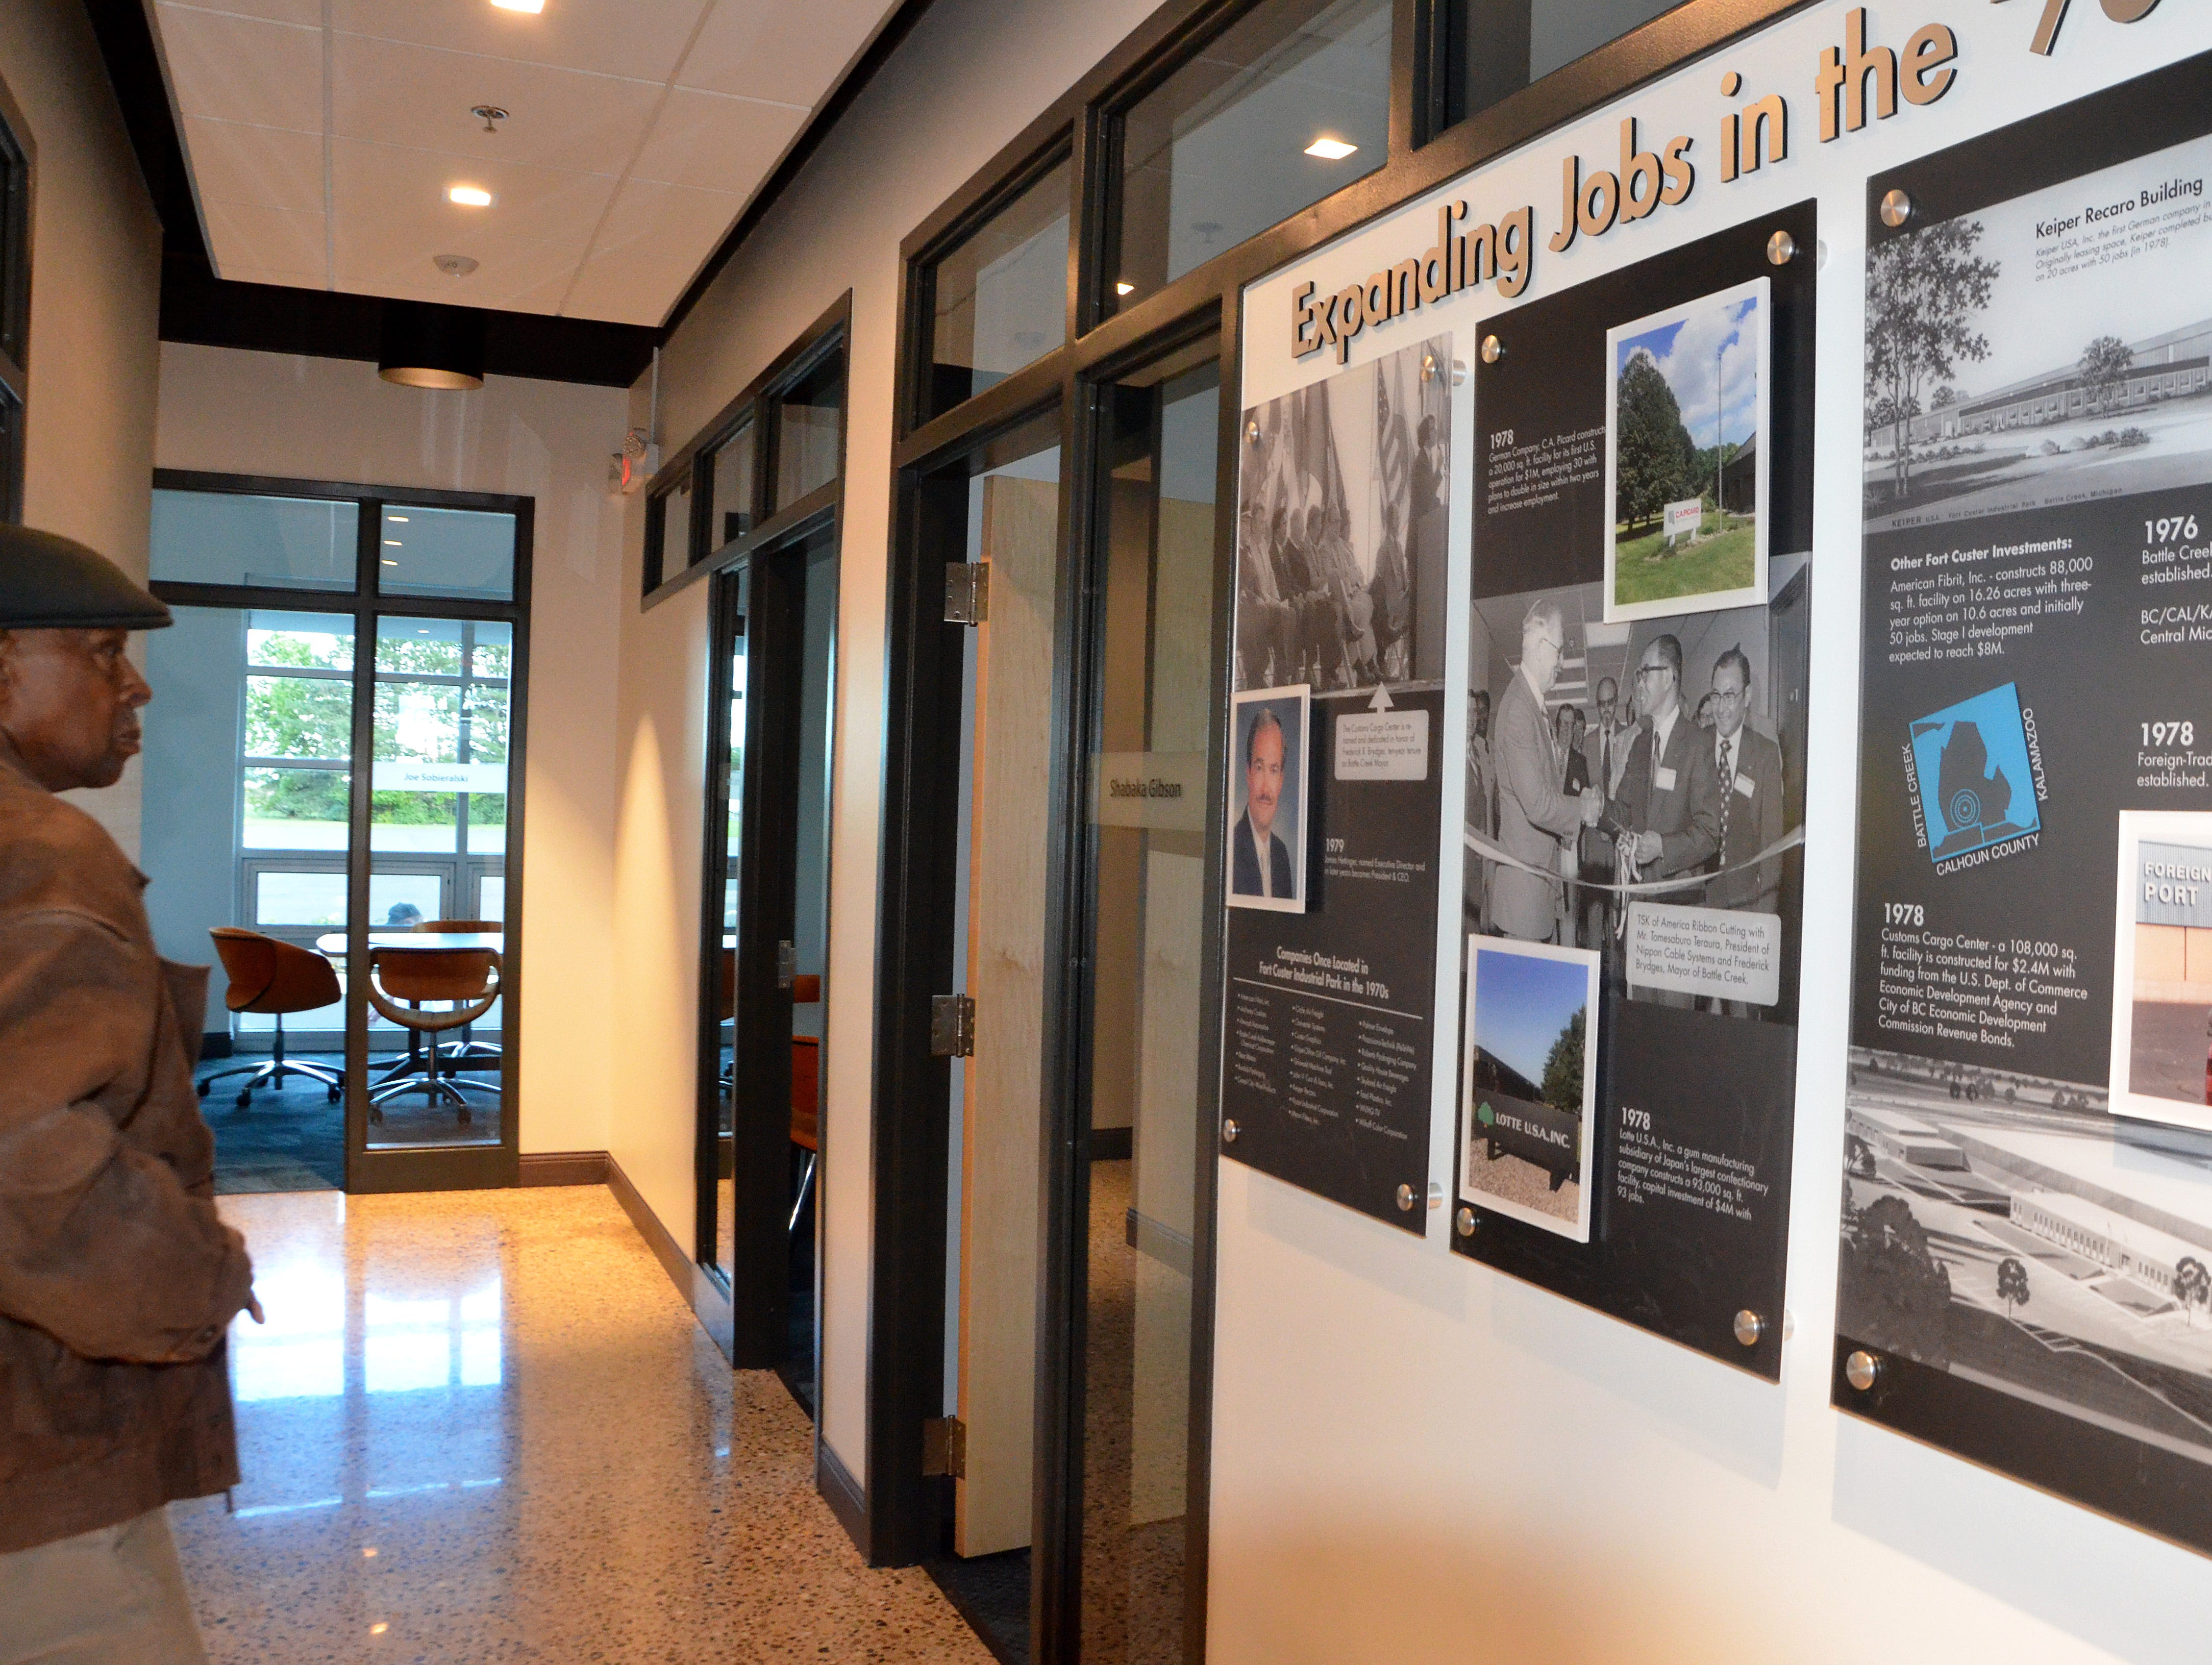 The walls of Battle Creek Unlimited's new office space have been decorated with six panels detailing Battle Creek Unlimited's history from 1969 through 1979. Panels for the years after that to now will be added over time.